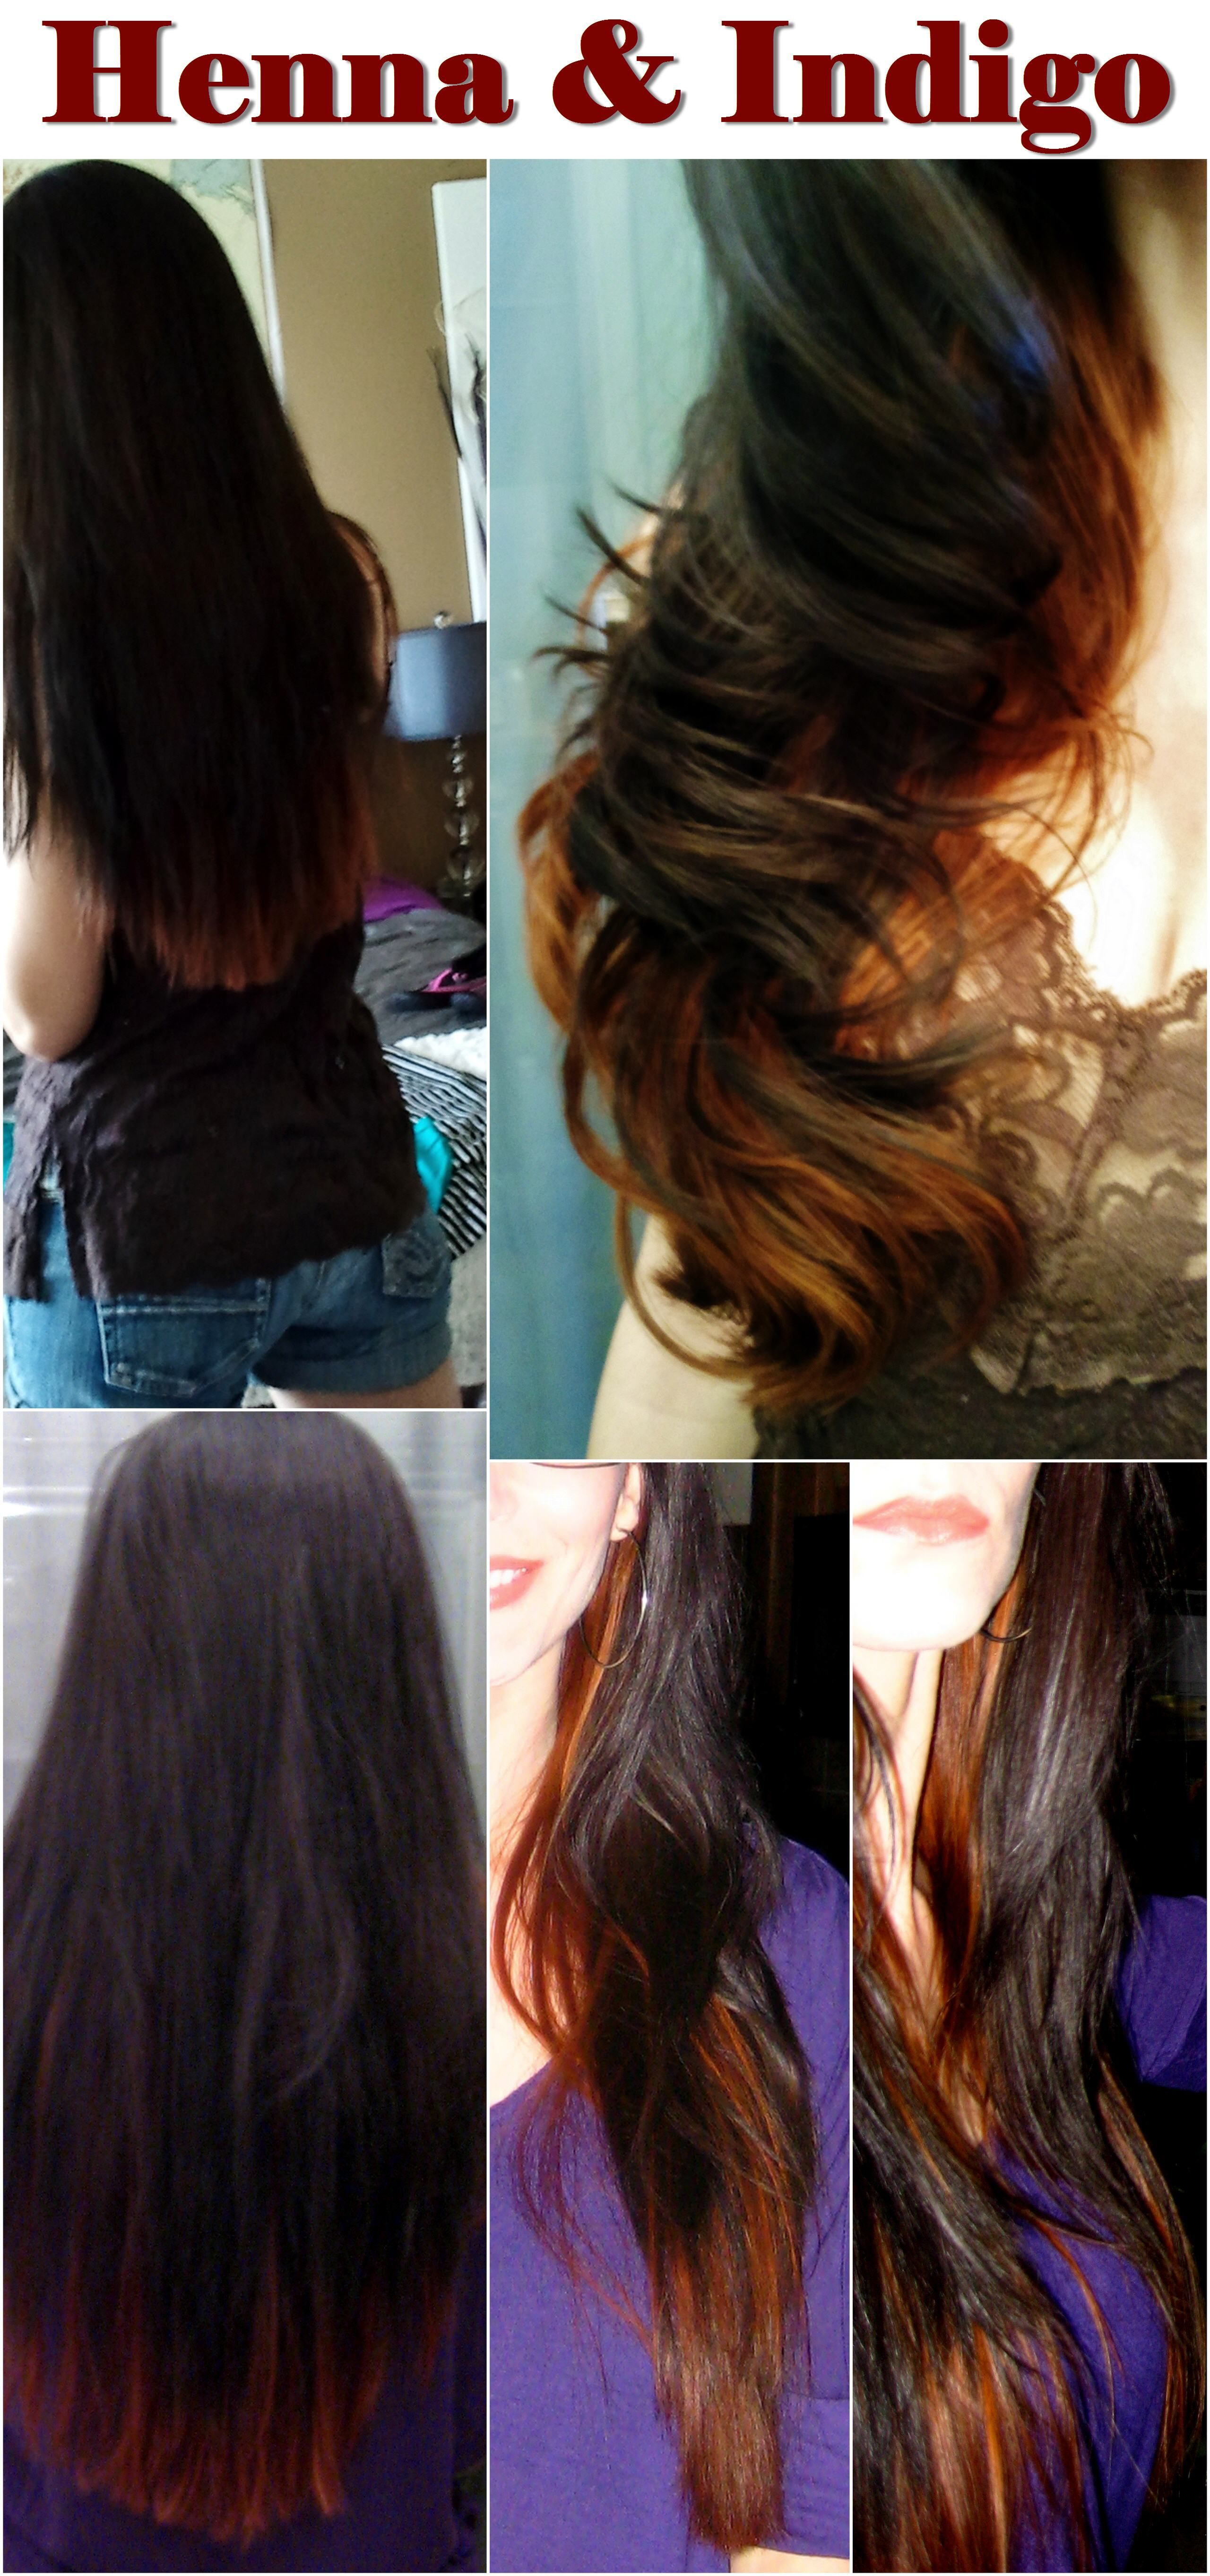 My Black And Copper Hair Pure Henna And Indigo Powder I 1st Dyed